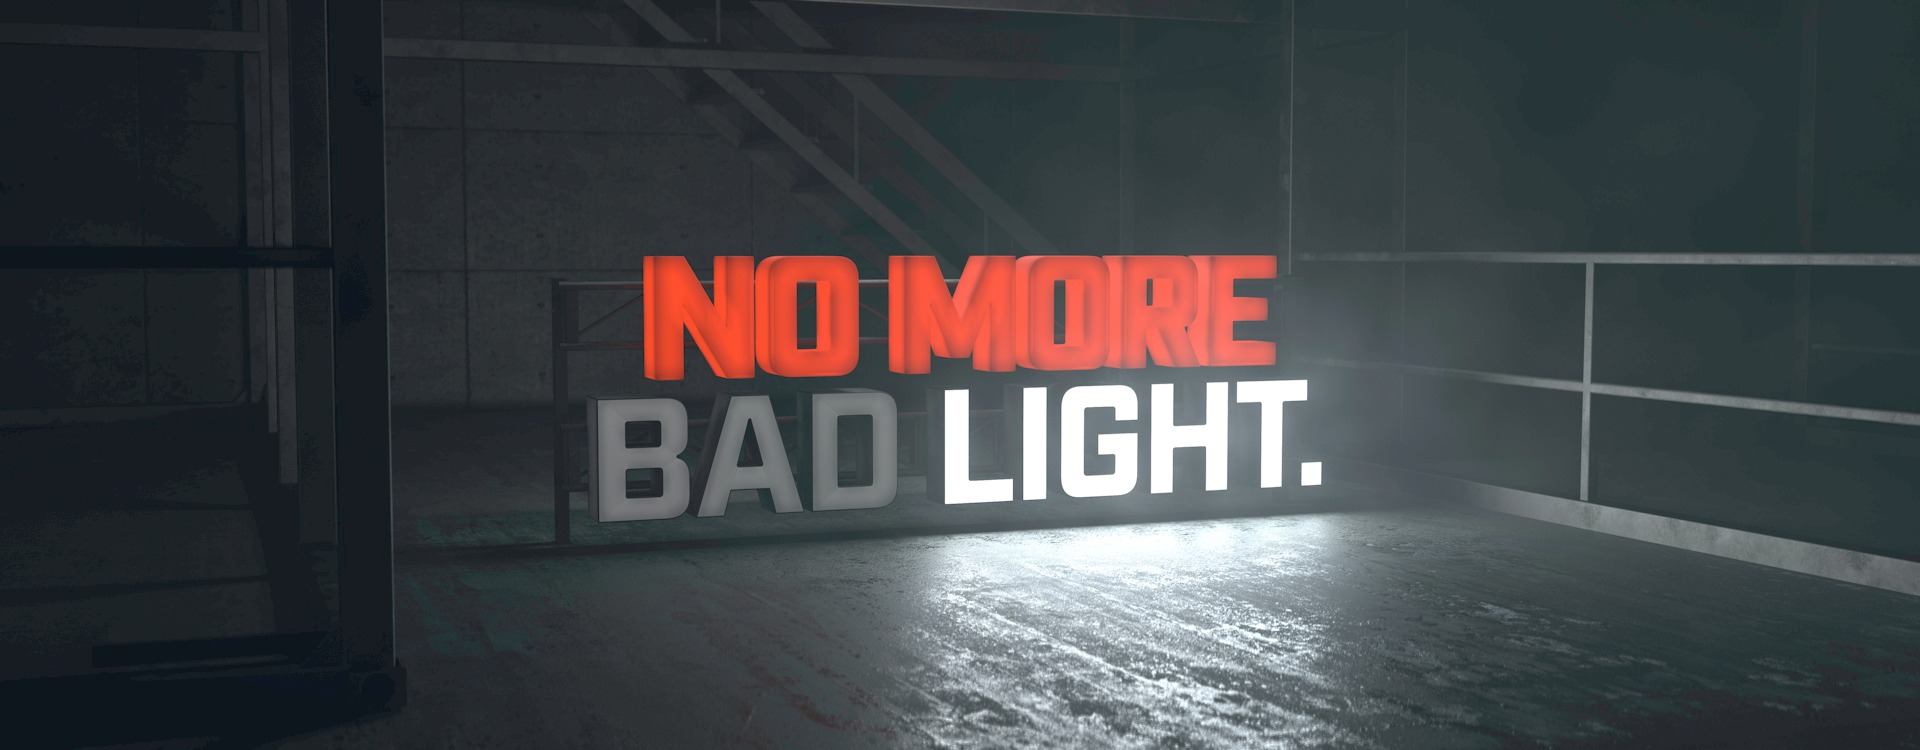 No more Bad light banner